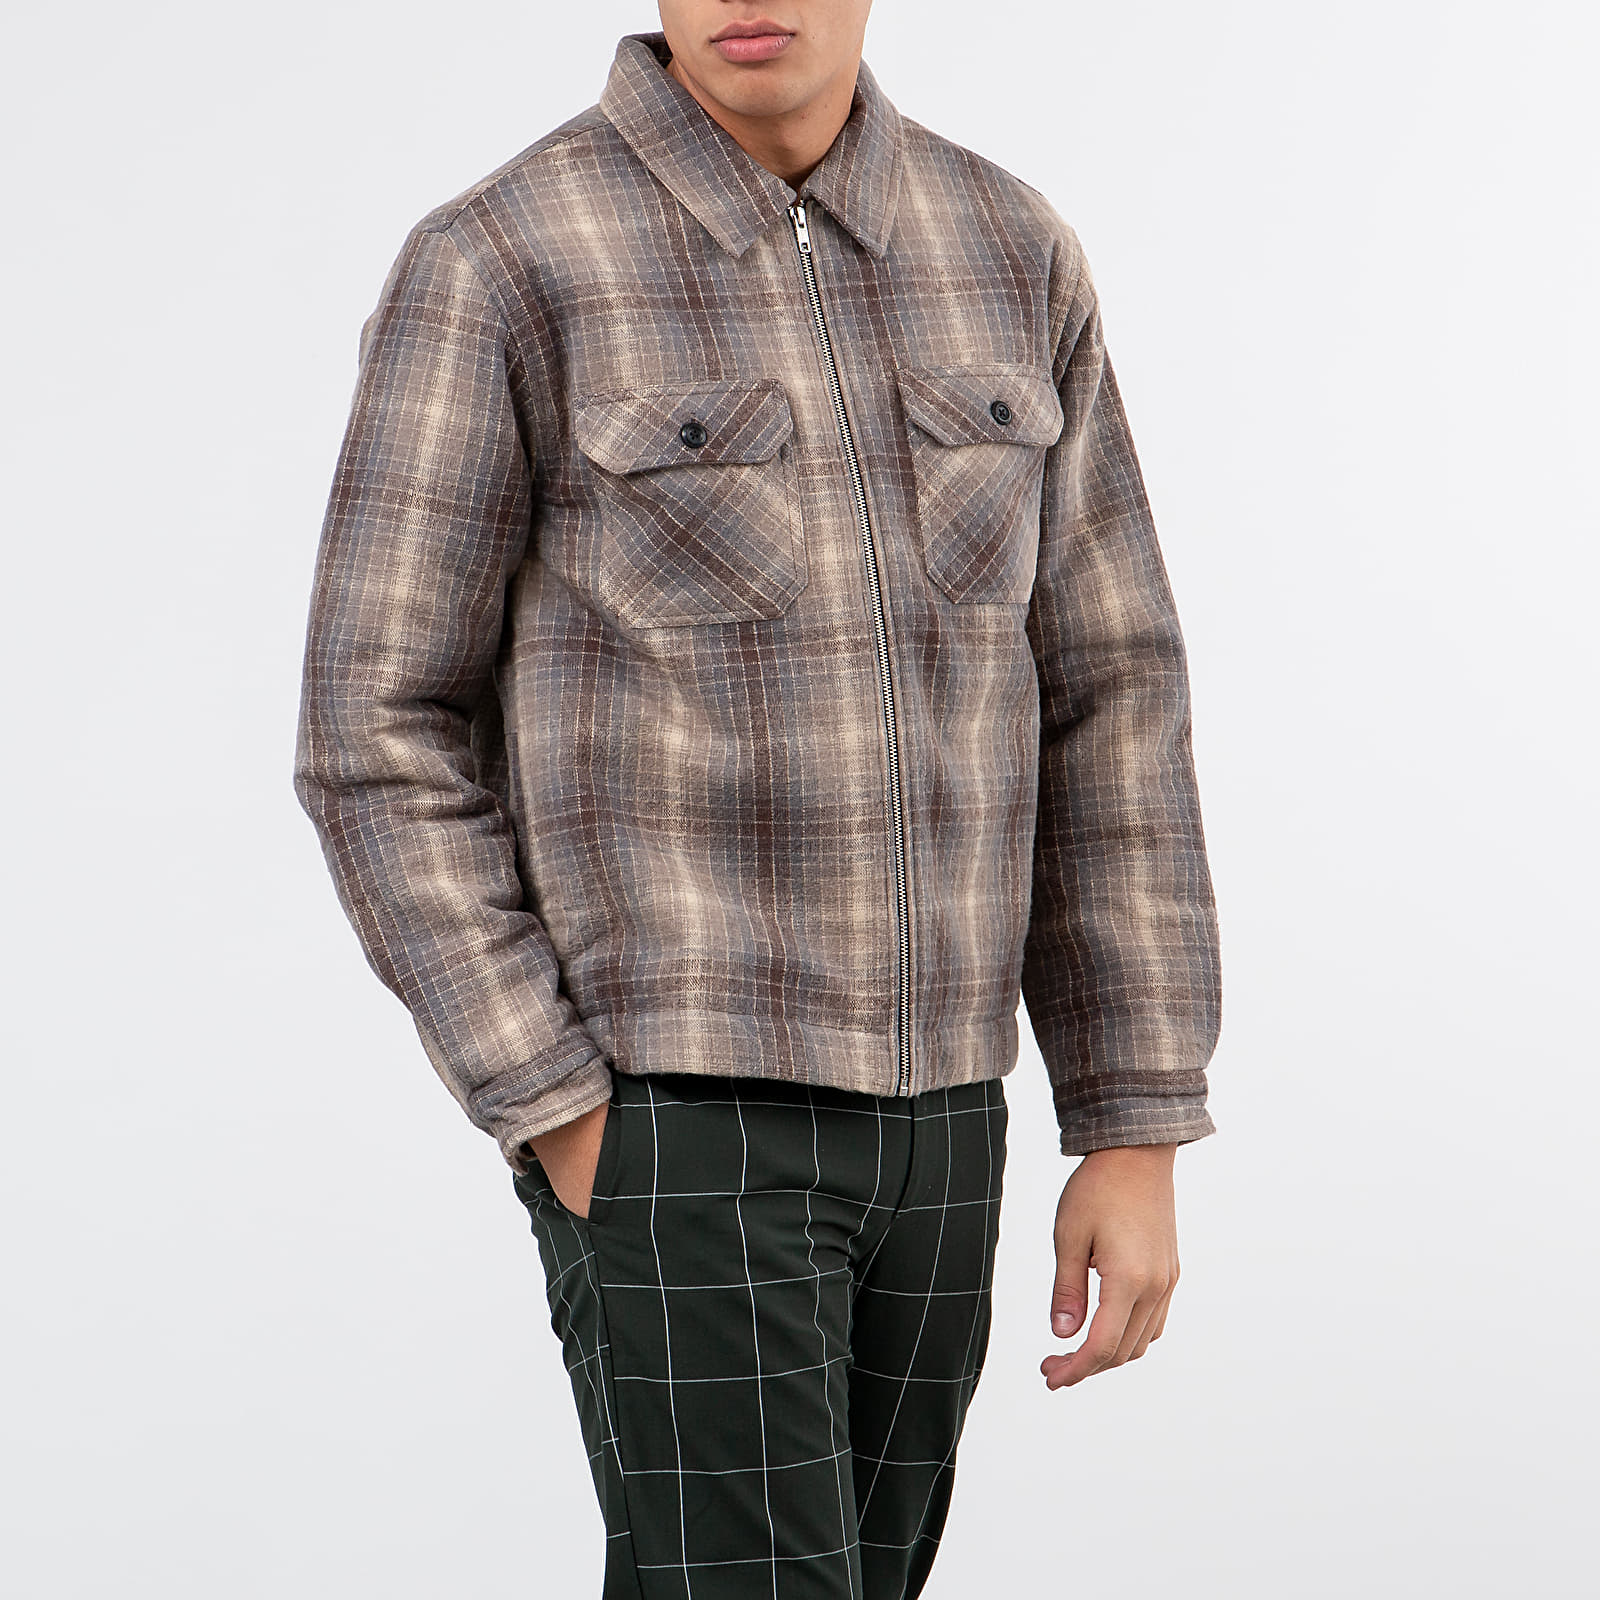 Stüssy Heavy Brush Plaid Zip Up Shirt Jacket